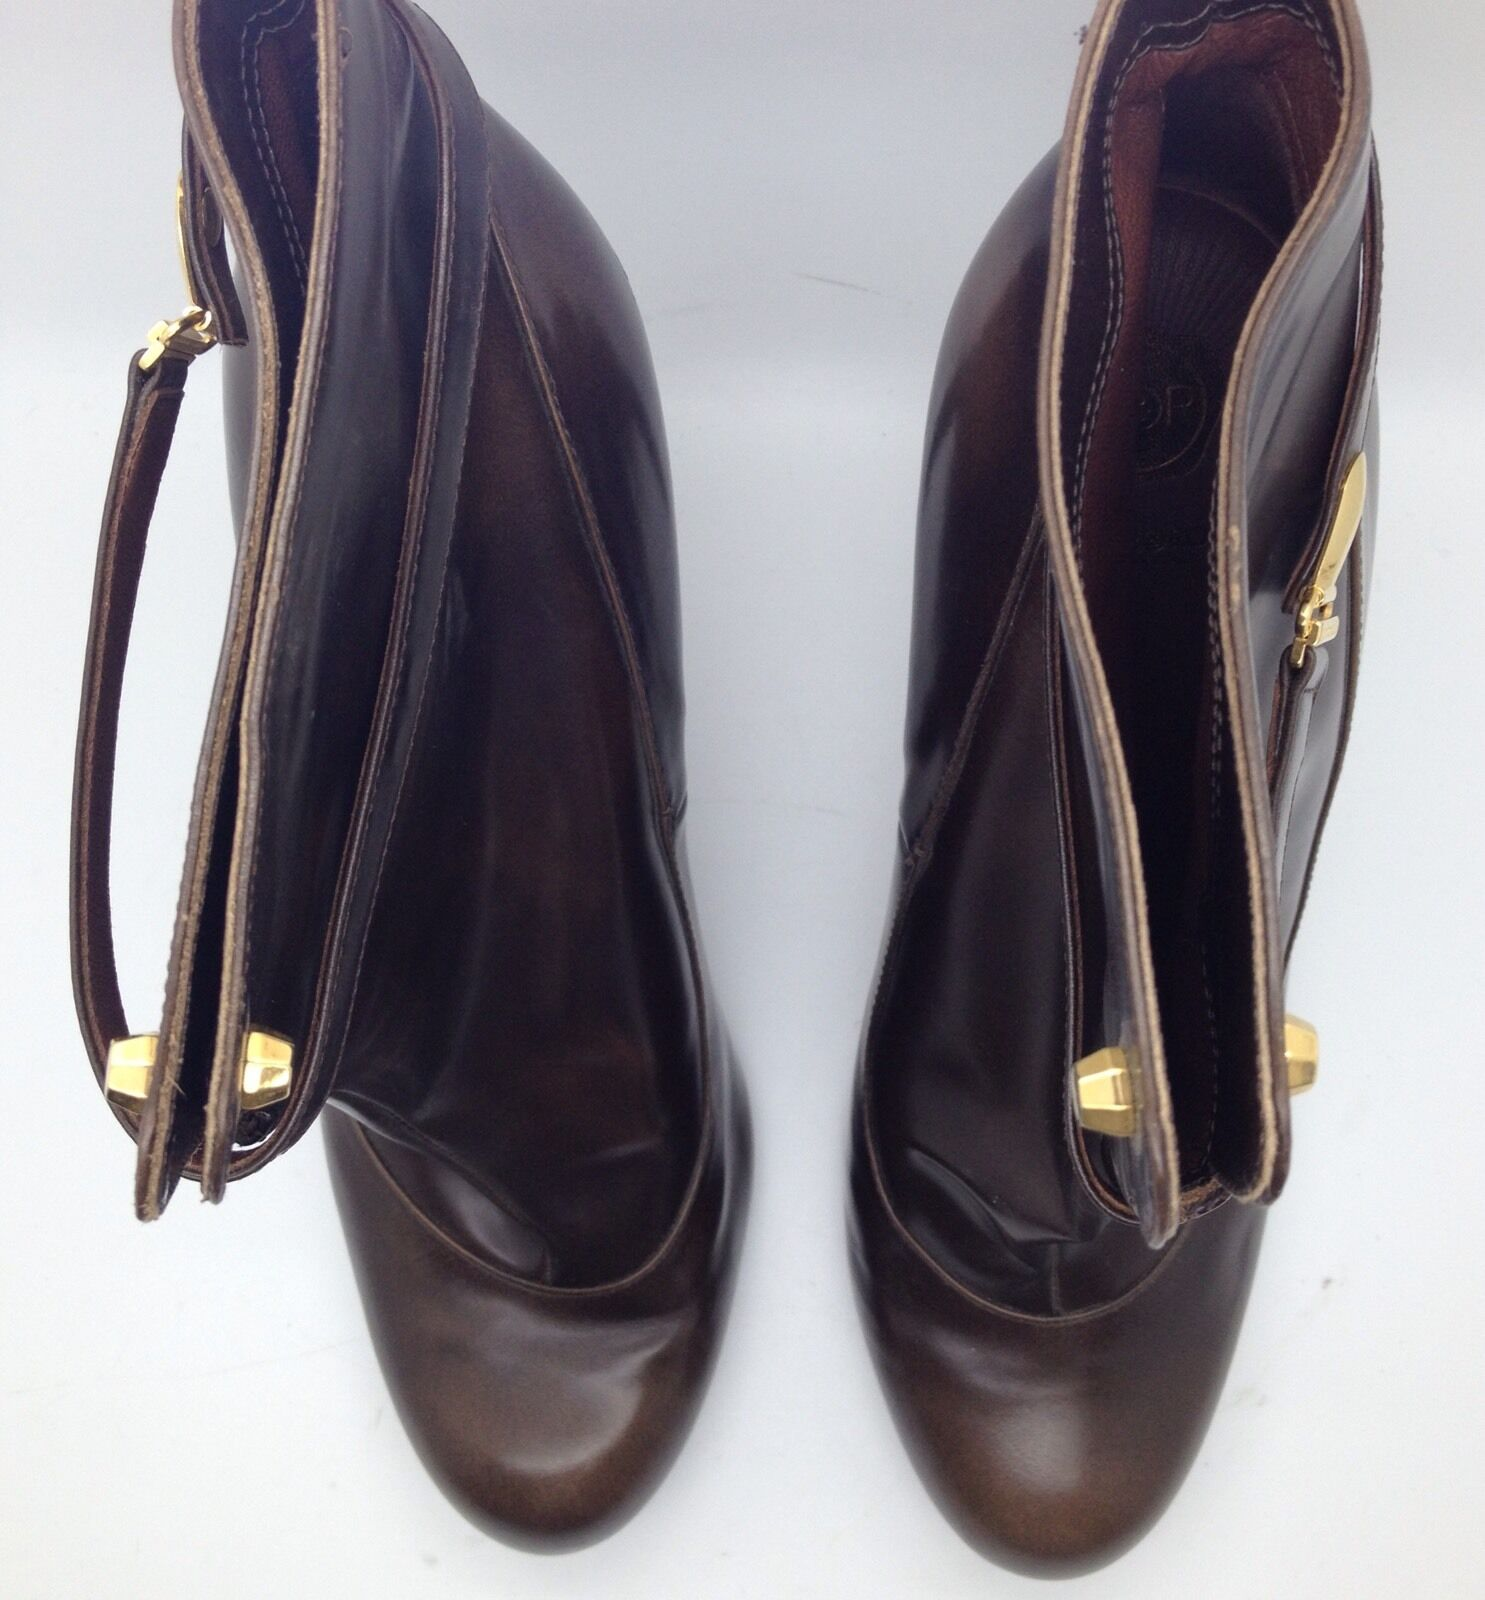 VIKTOR & & & ROLF Brown Leather High Heels Ankle Boots gold LocK Strap 9.5M 40  72cba1